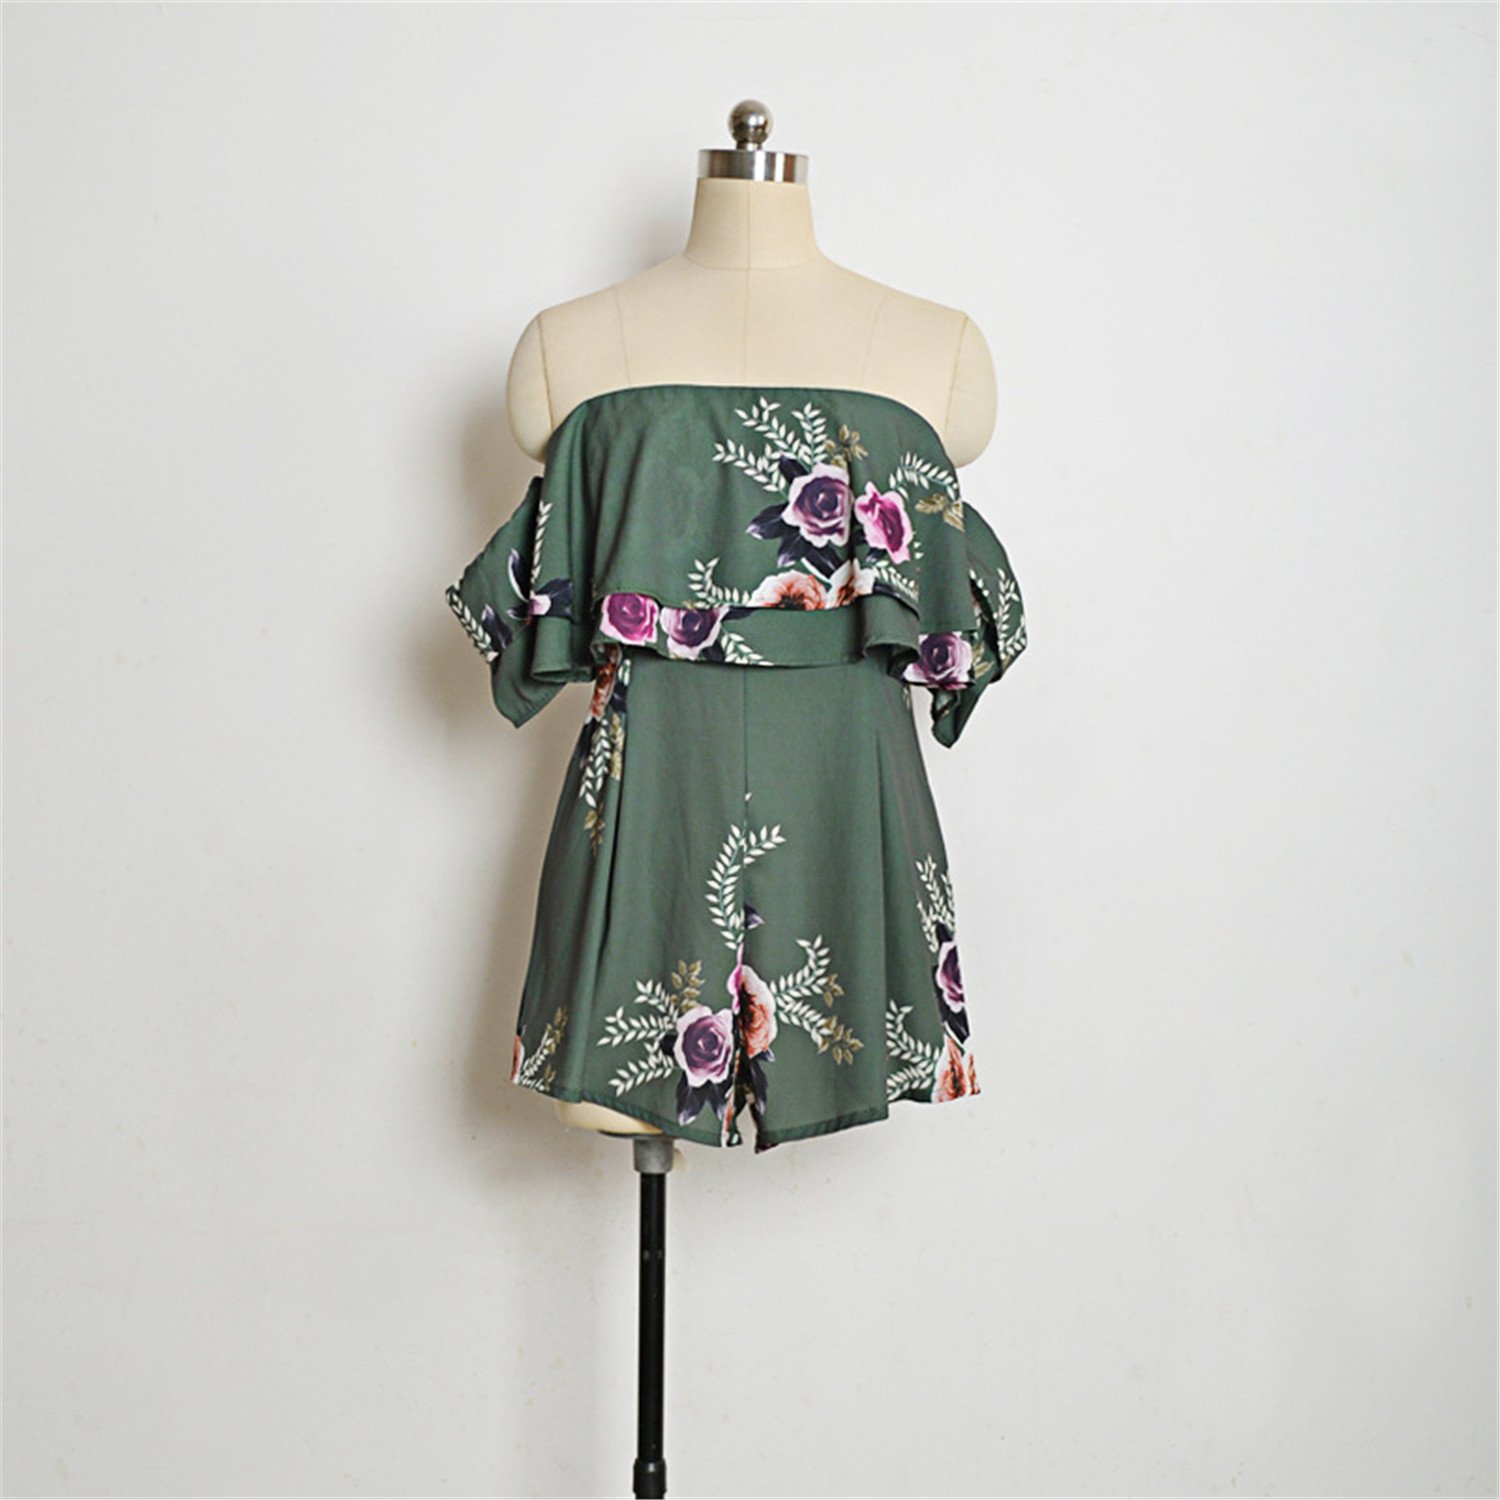 Arctic Cubic Short Sleeve Off The Shoulder Layered Ruffled Ruffle Hem Floral Playsuit Romper Jumpsuit Shorts